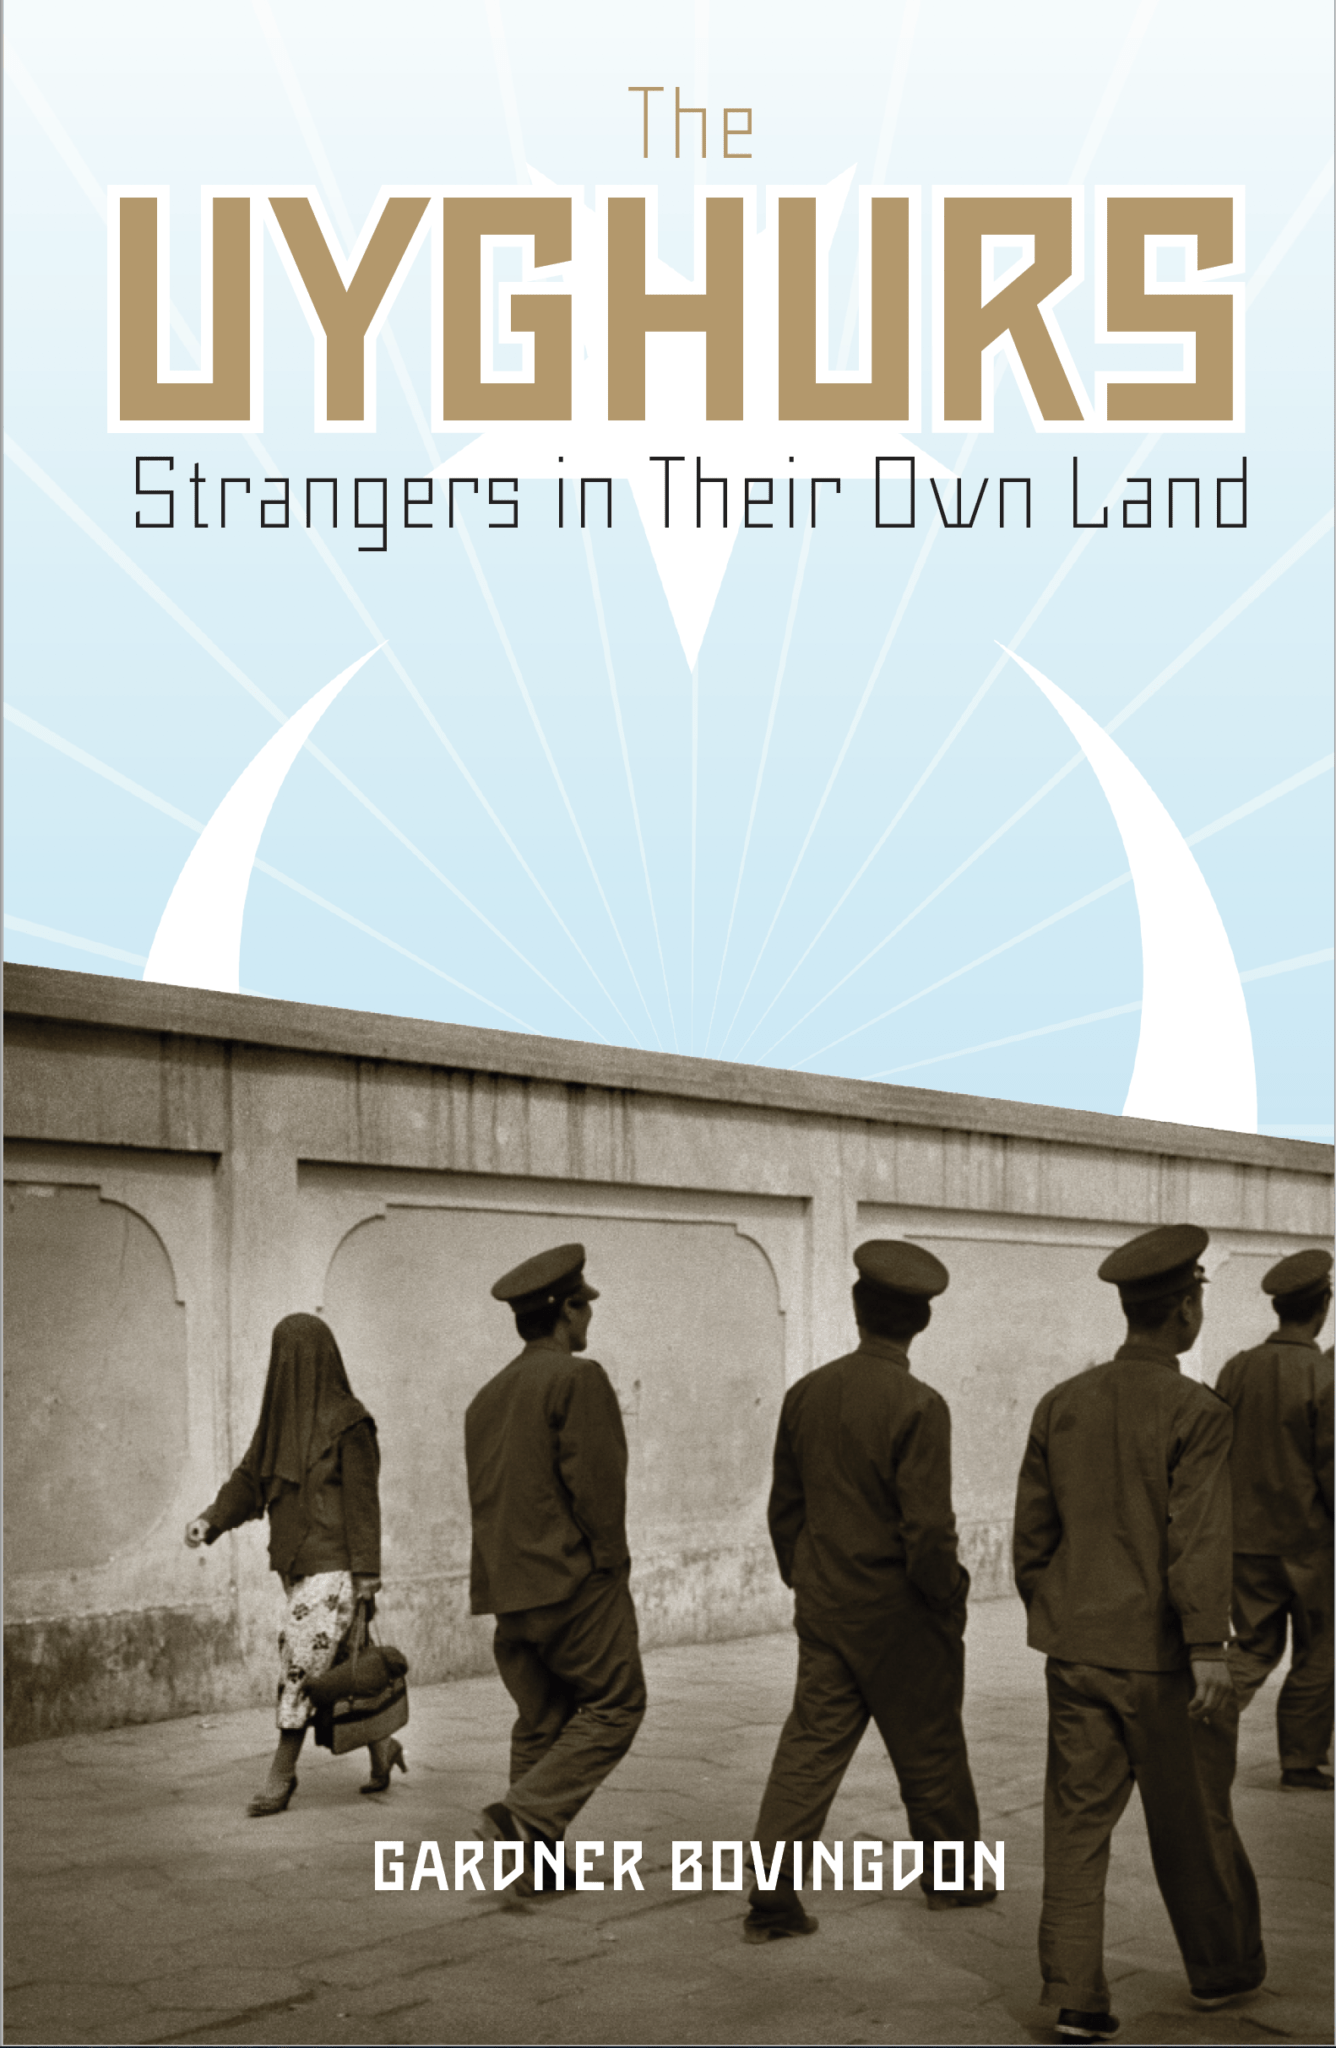 Screenshot 2020 02 01 at 14.27.21 - The Uyghurs: Strangers in Their Own Land